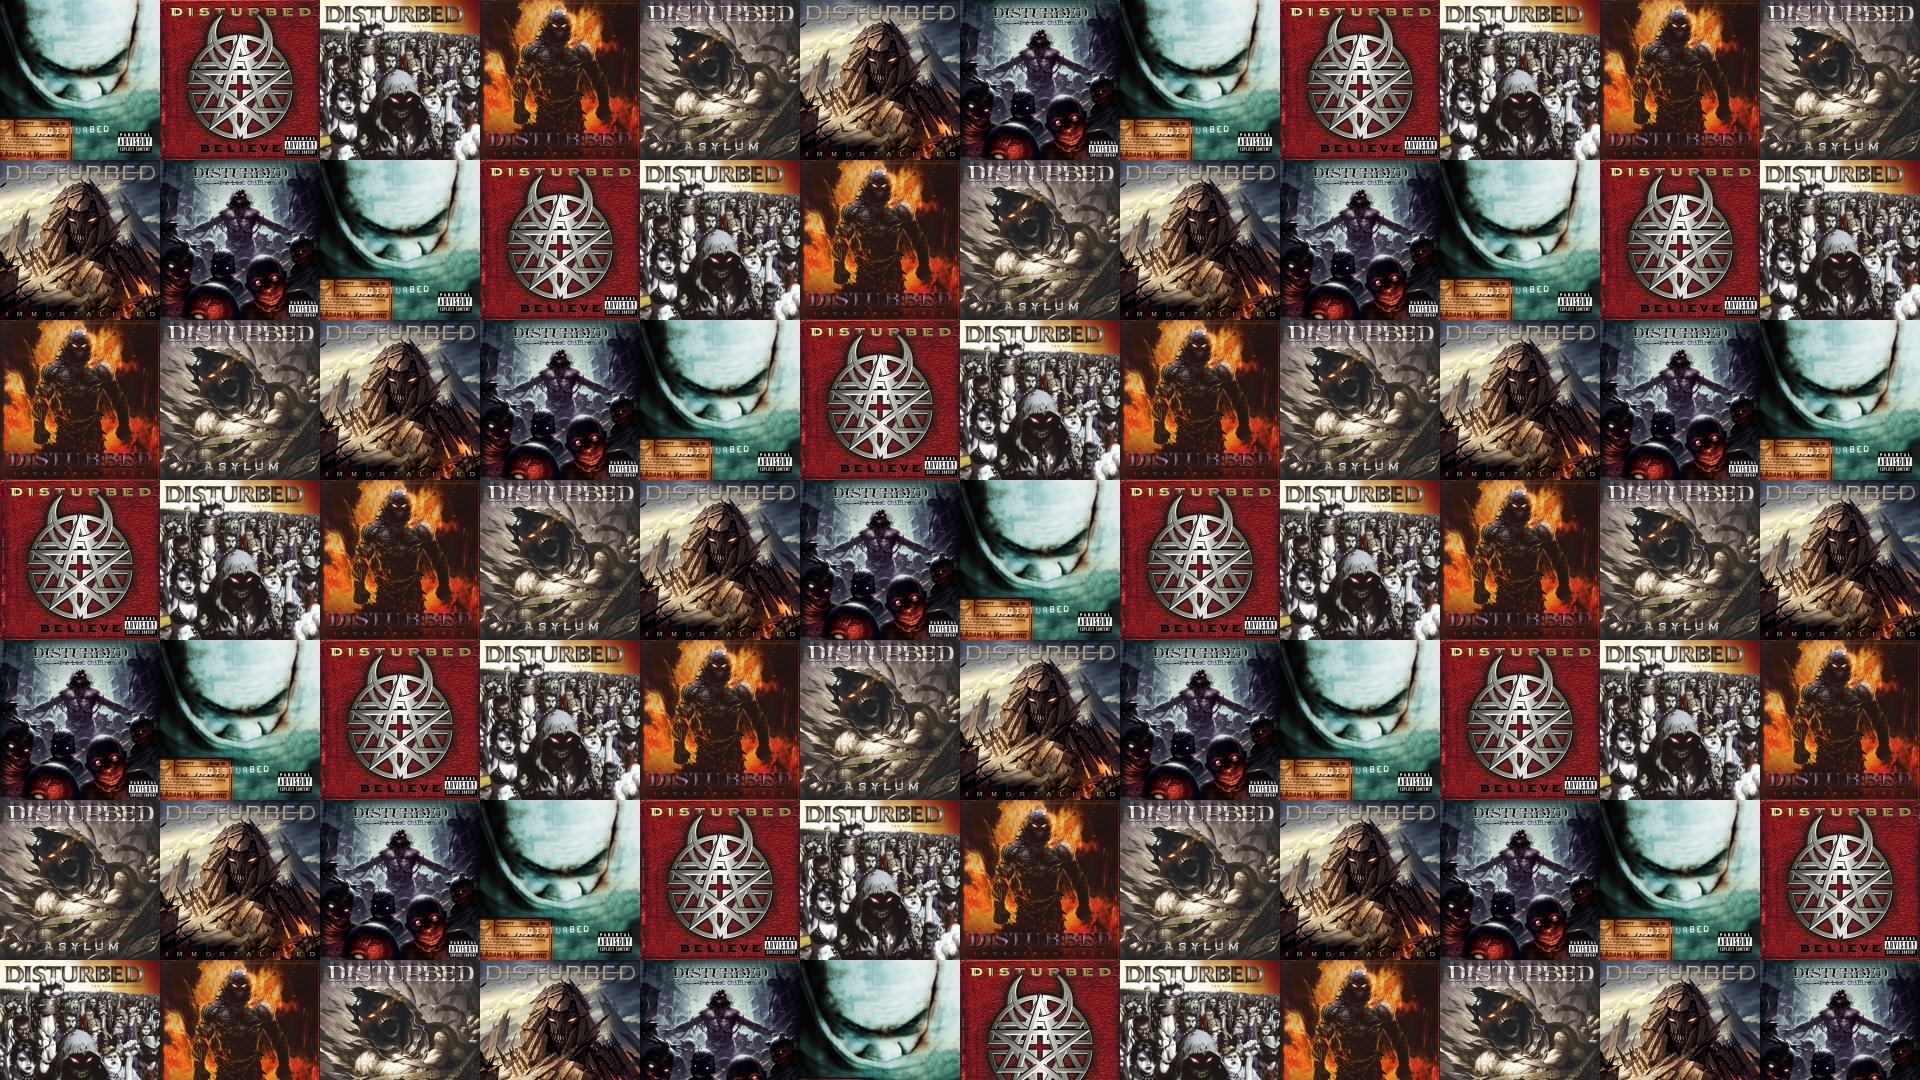 Res: 1920x1080, Disturbed Sickness Believe Ten Thousand Fists Indestructible Asylum  Wallpaper Â« Tiled Desktop Wallpaper